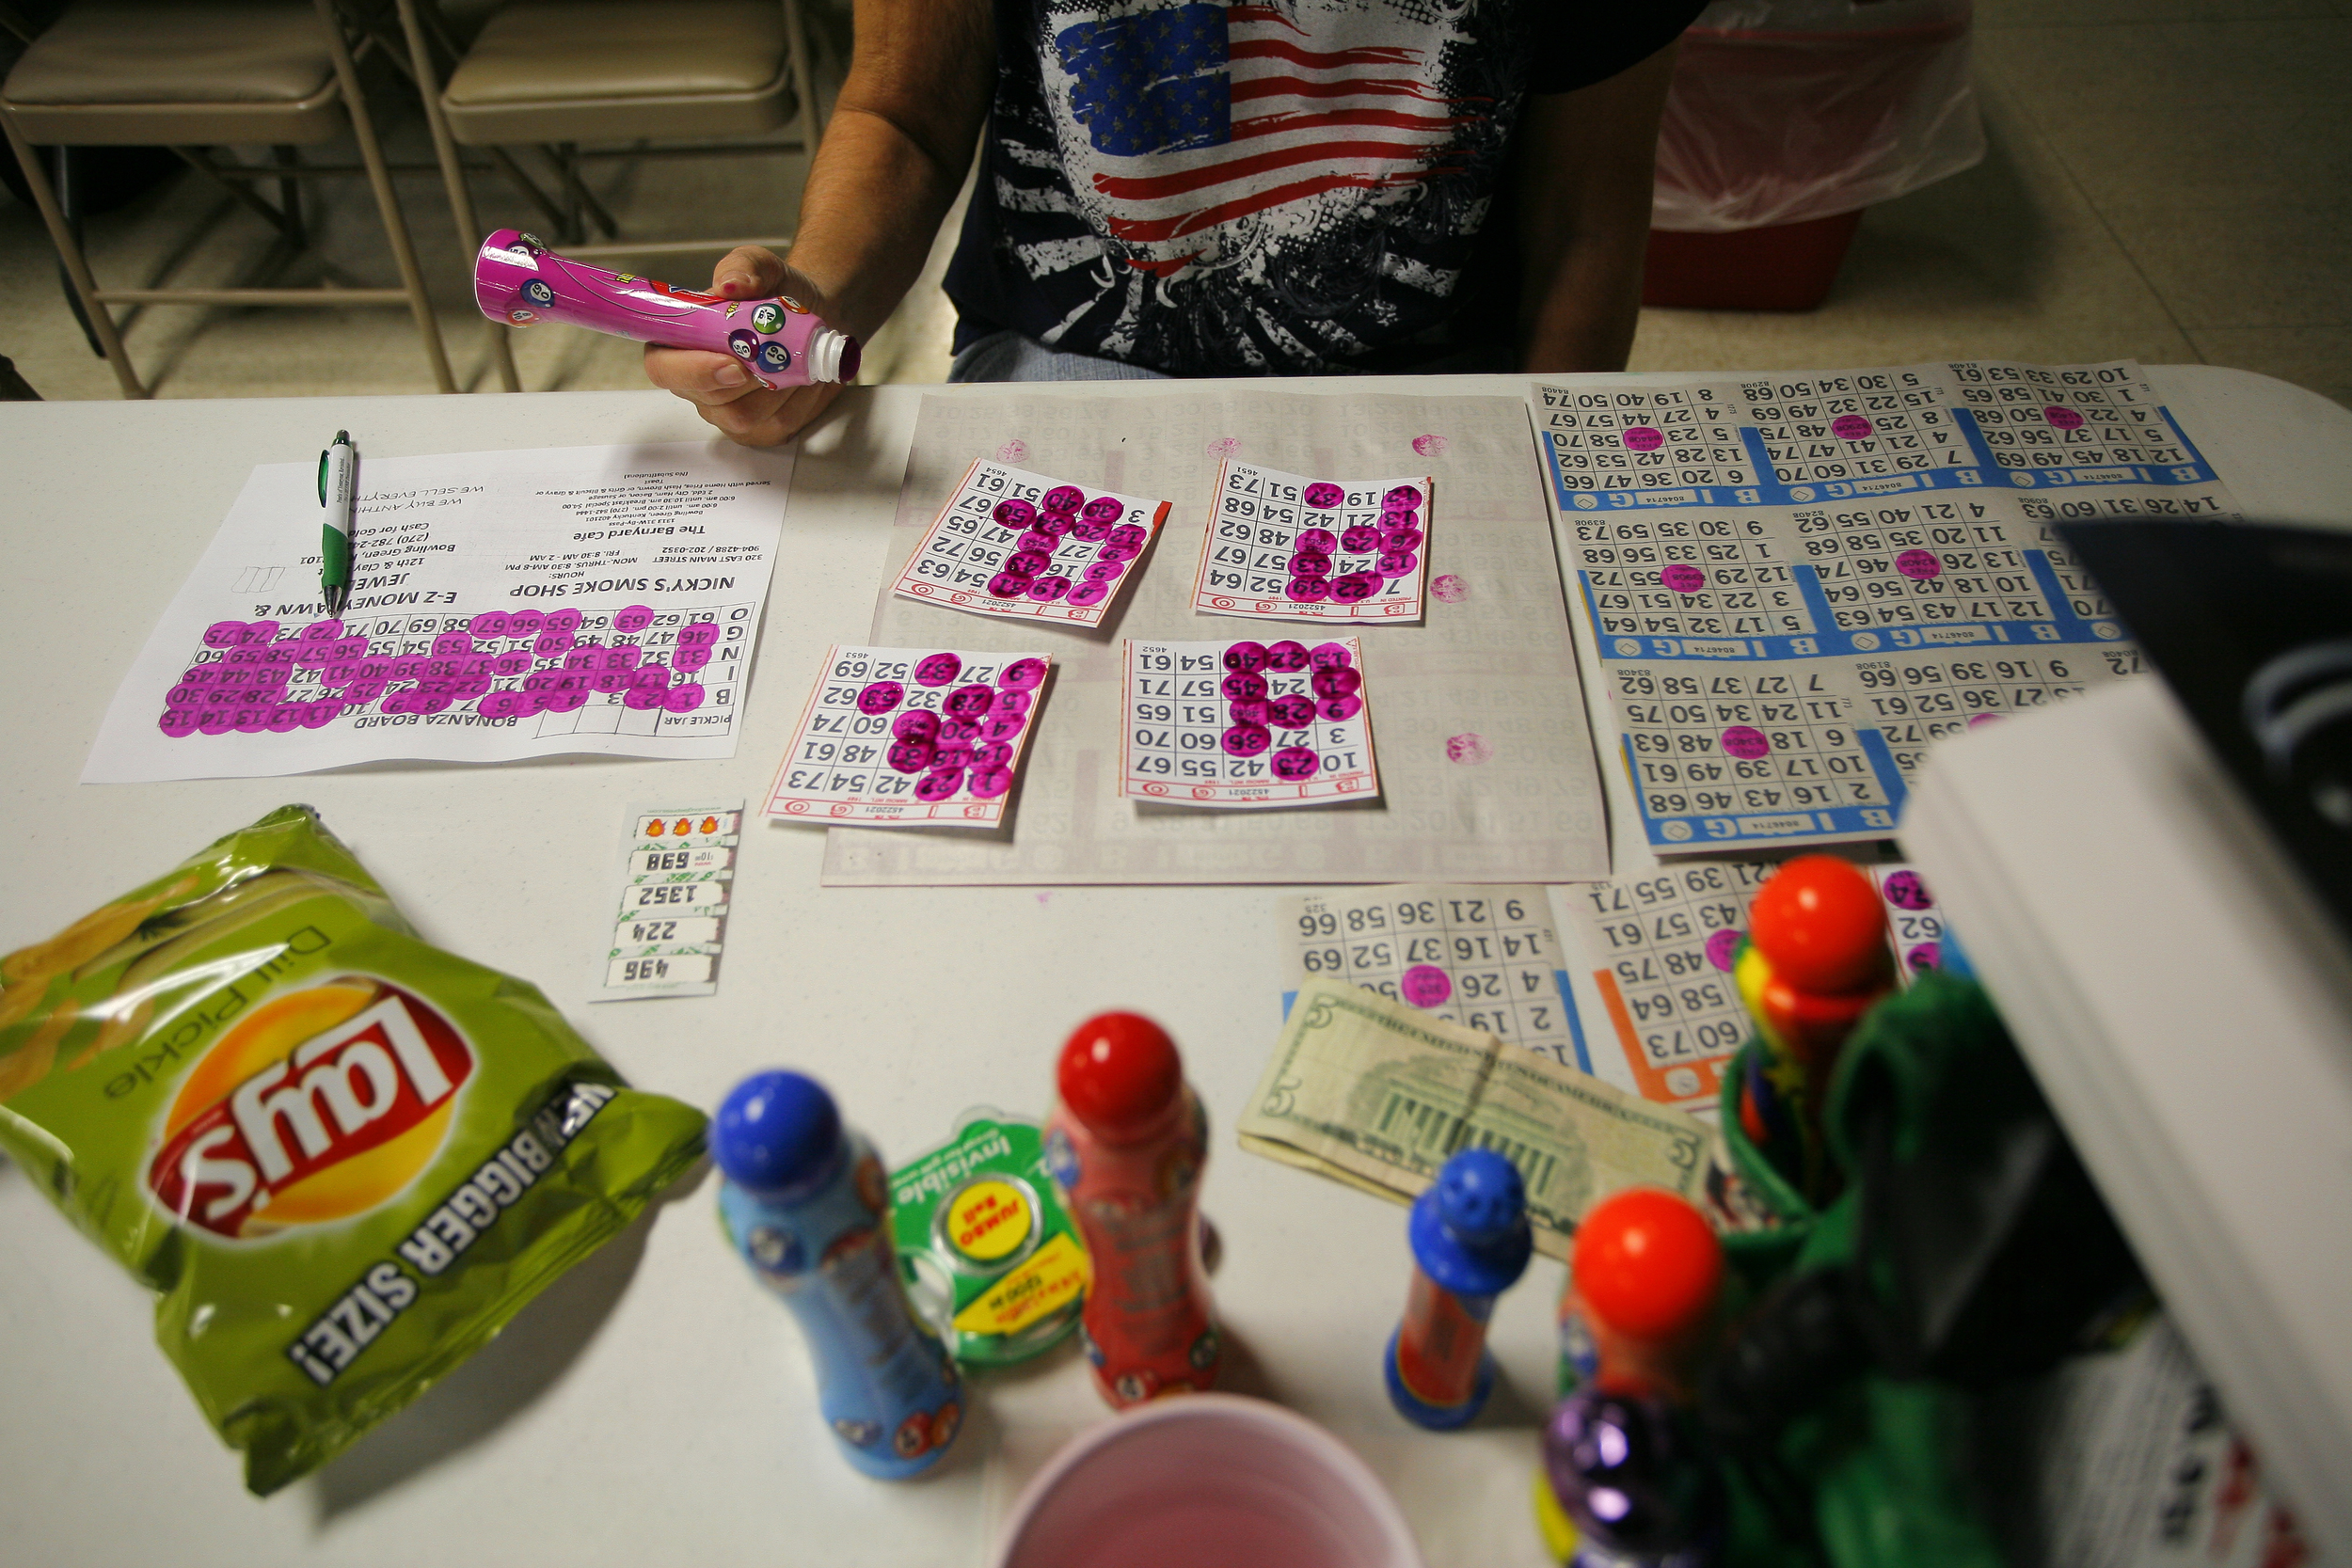 """Barbara Daugherty, of Morgantown, Ky., prepares to play bingo at the VFW in Bowling Green, Ky. Daugherty plays bingo two times a week, """"It's relaxing,"""" she said about playing. Daugherty won $1,500 in one game when she and her husband were stationed in Japan during his service in the Air Force."""